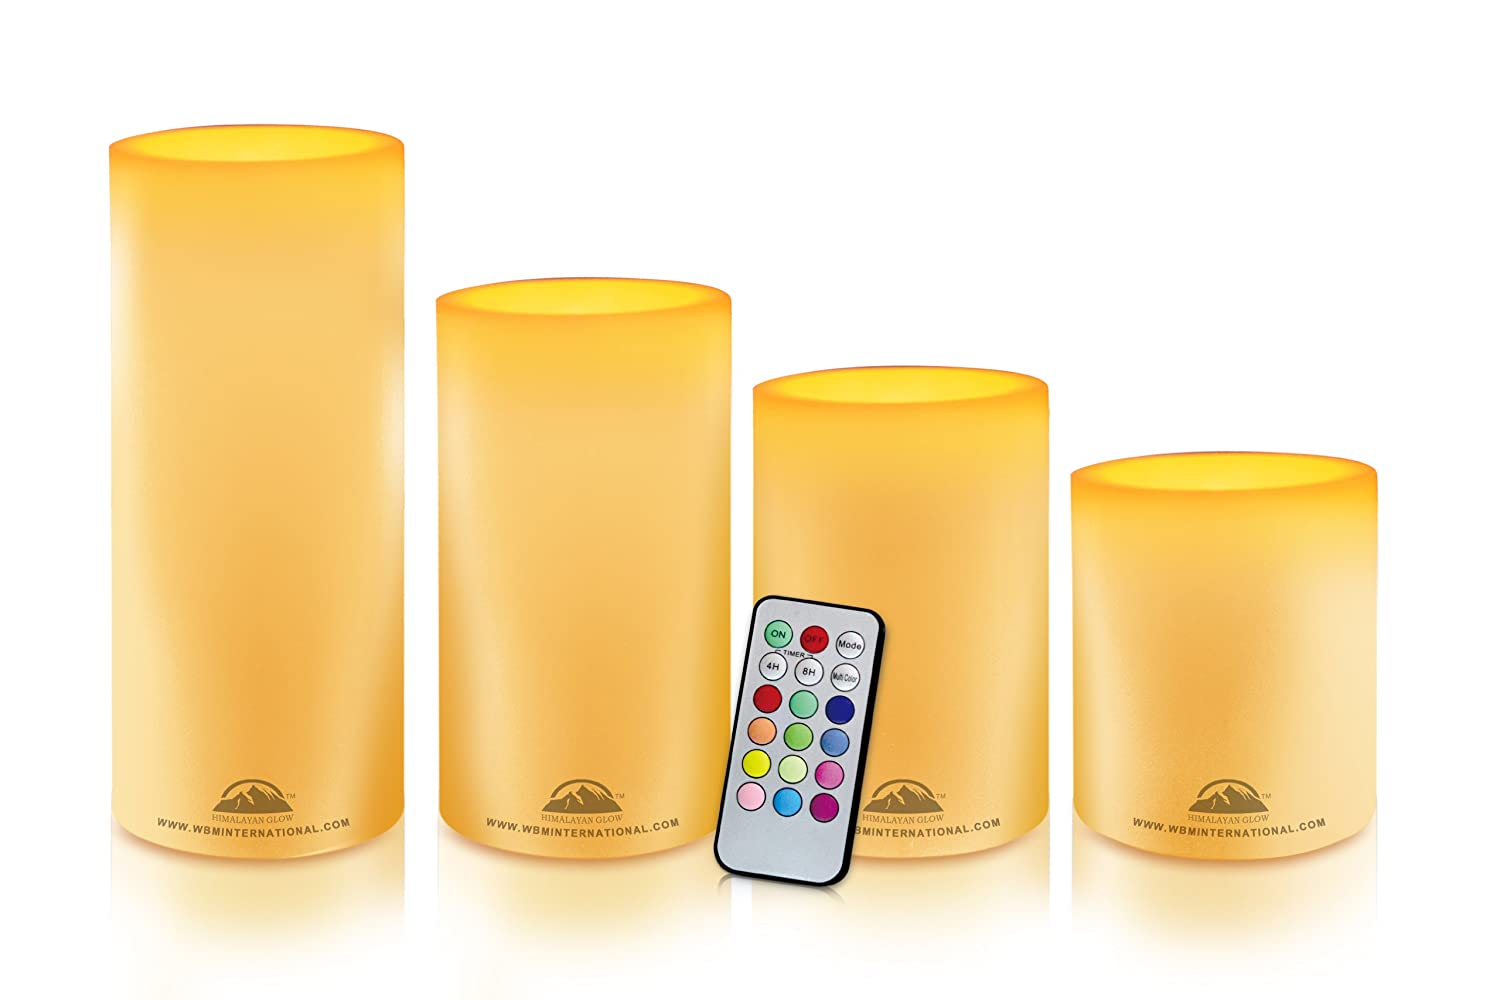 HIMALAYAN GLOW HG1203 Realistic Flameless Multi-Color Changing LED Candle Pillars, set of 3 Pillars, 18 Keys Remote Control with 4 or 8 Hours Timer functions, Adjustable brightness and 12 LED Color Settings